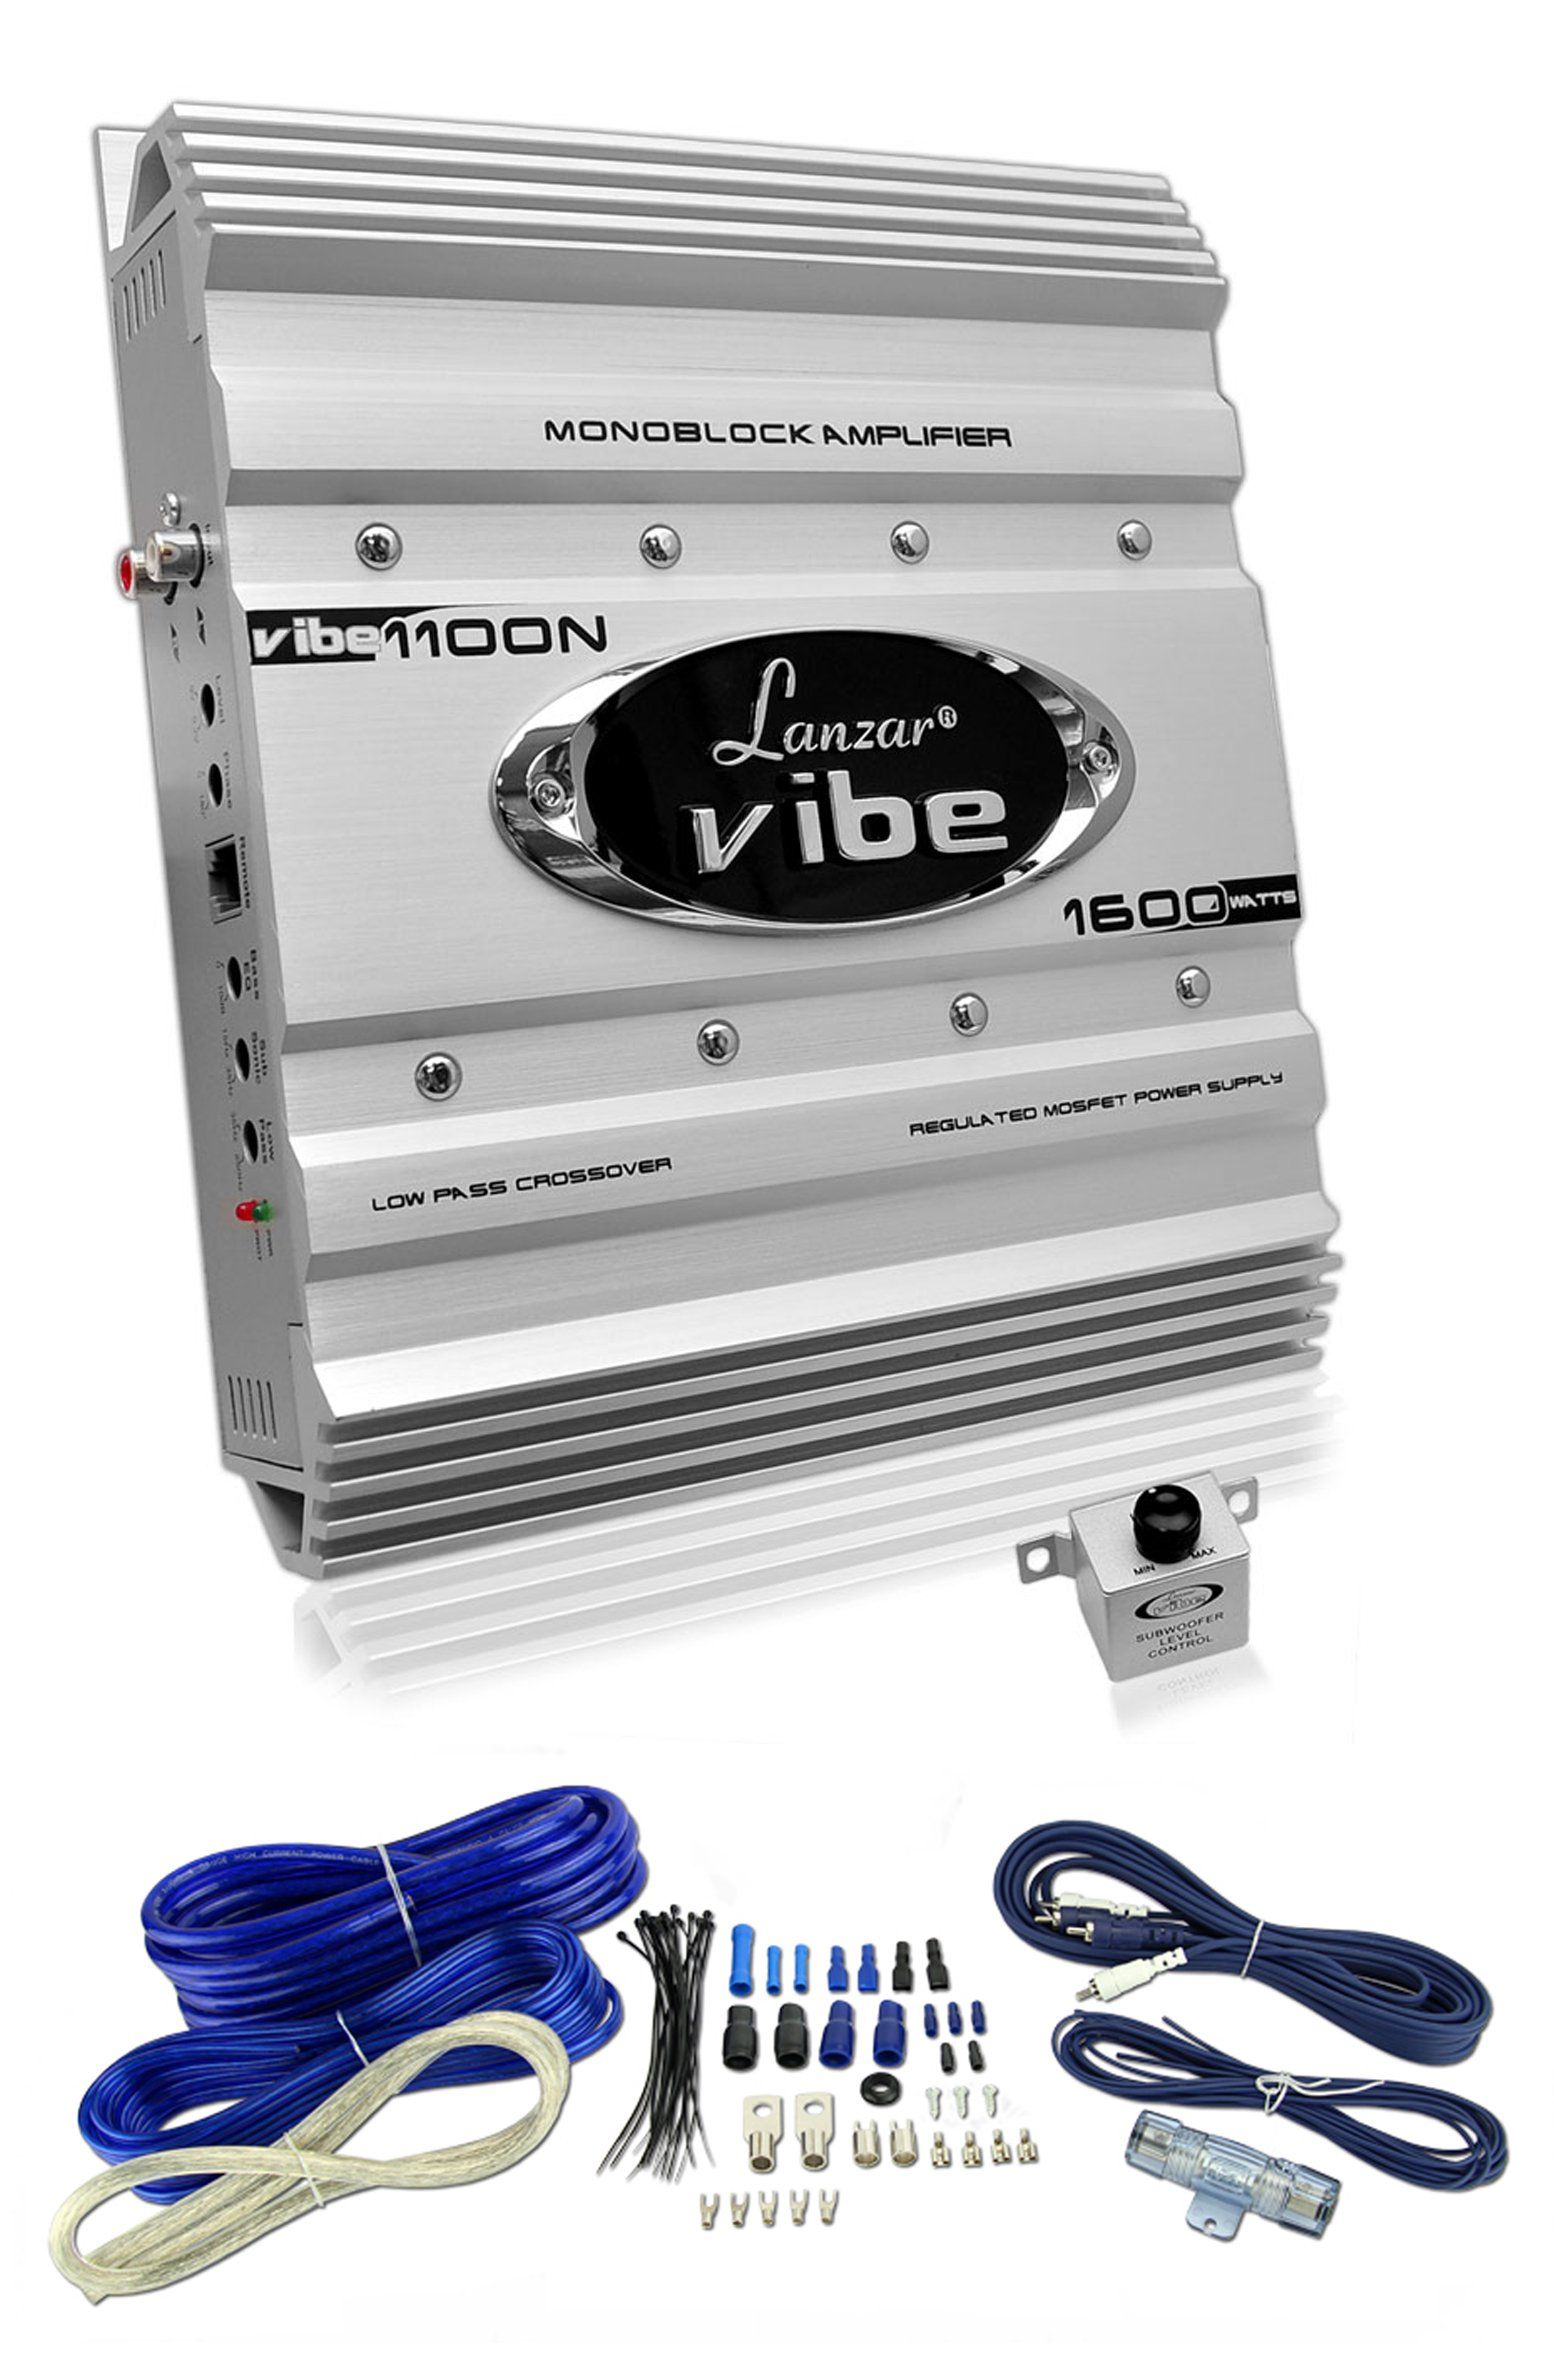 Lanzar Amp Wiring Kit Wire Center Best Amplifier New Vibe1100n 1600 Watt Mono 1 Channel Car Audio Rh Walmart Com 1000